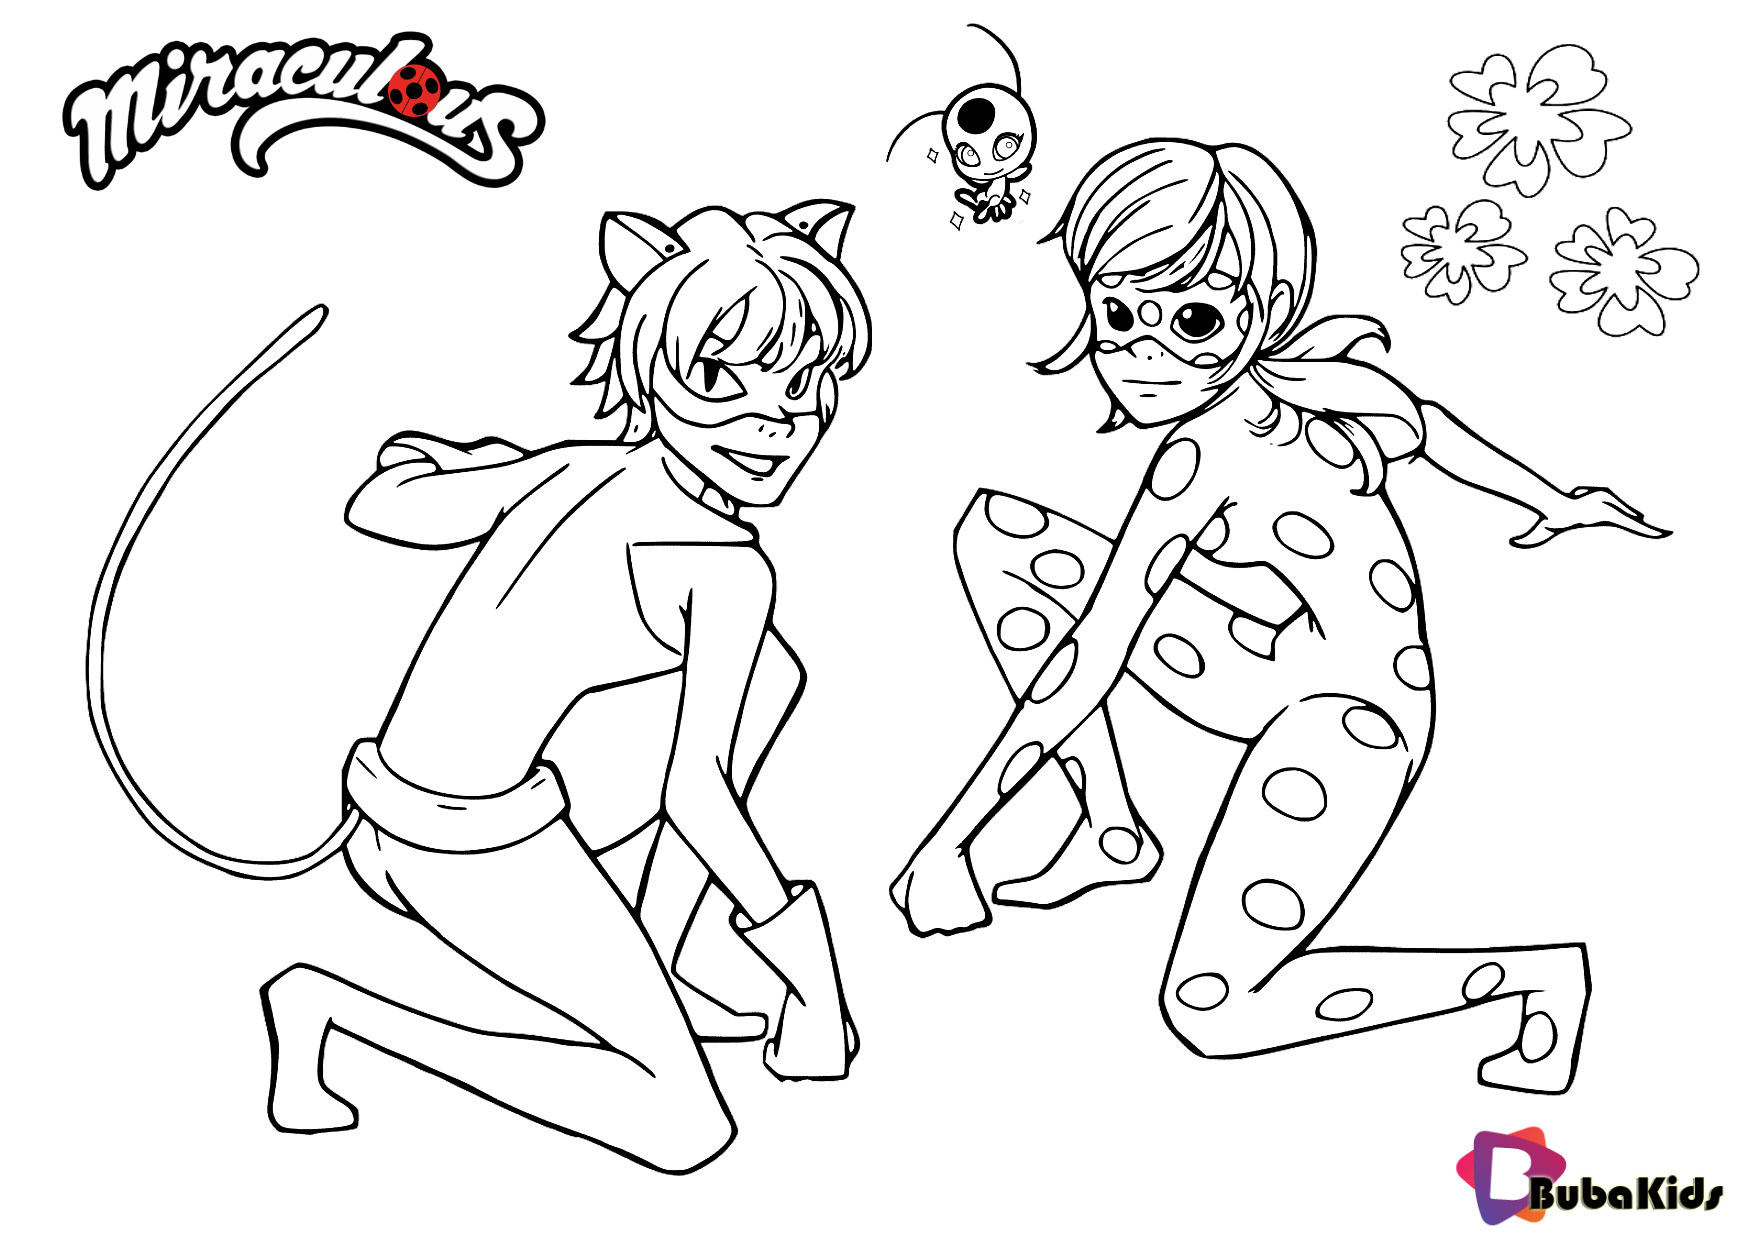 Pin By Coloring Pages Bubakids On Cartoon Coloring Pages Cartoon Coloring Pages Coloring Pages Miraculous Ladybug